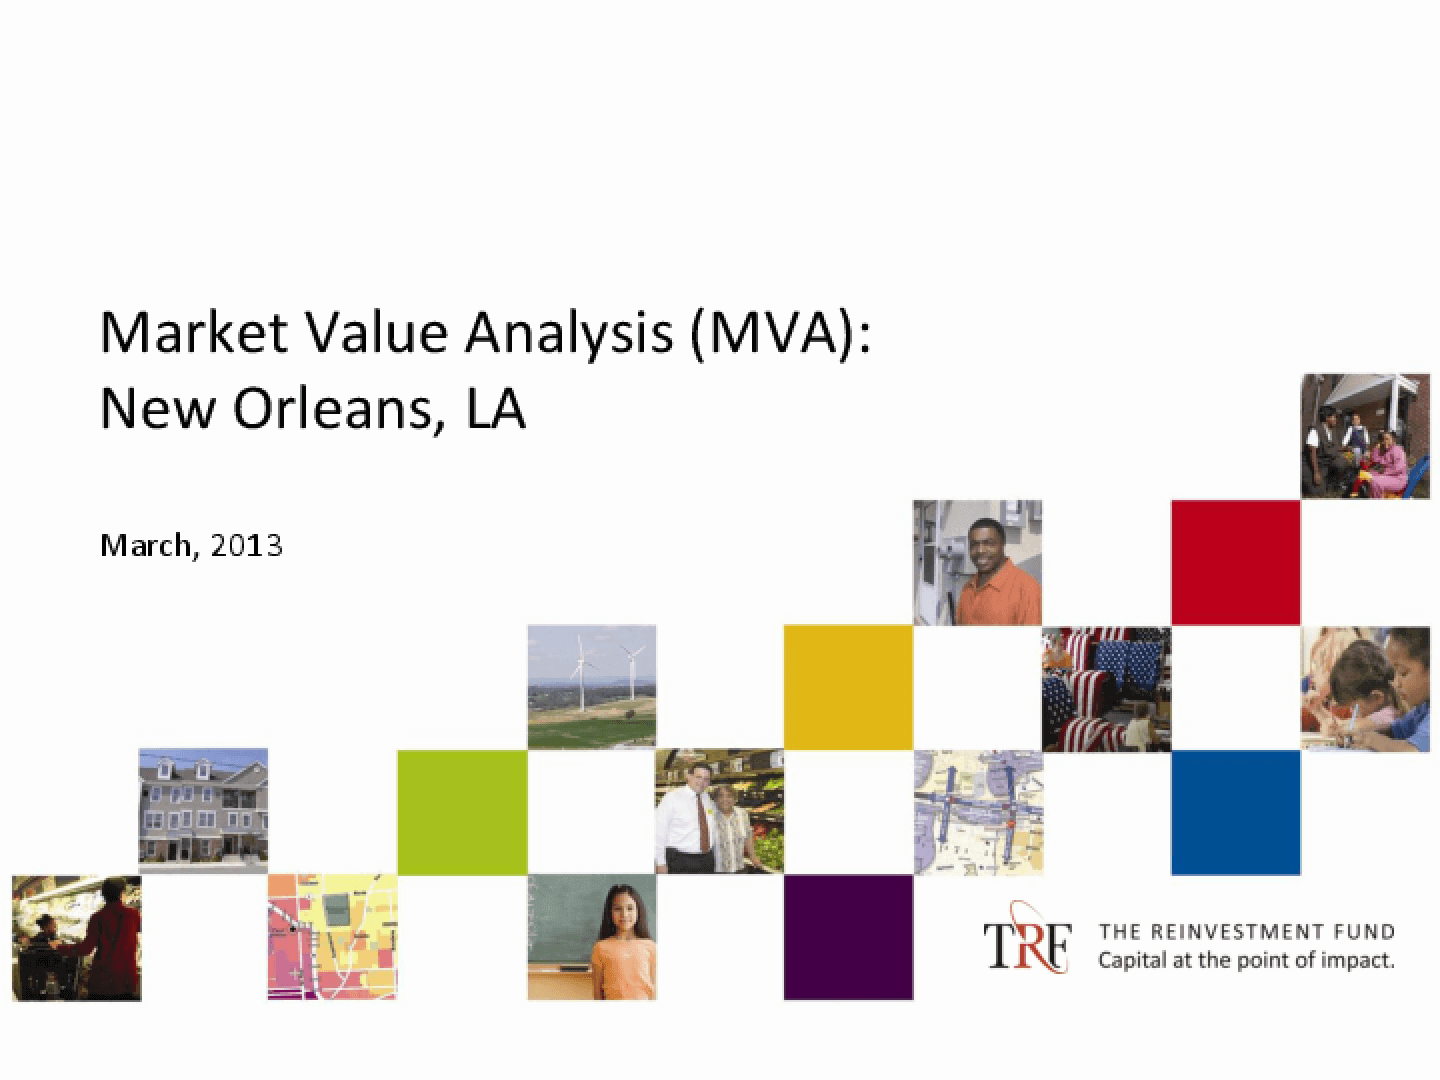 Market Value Analysis (MVA): New Orleans, LA